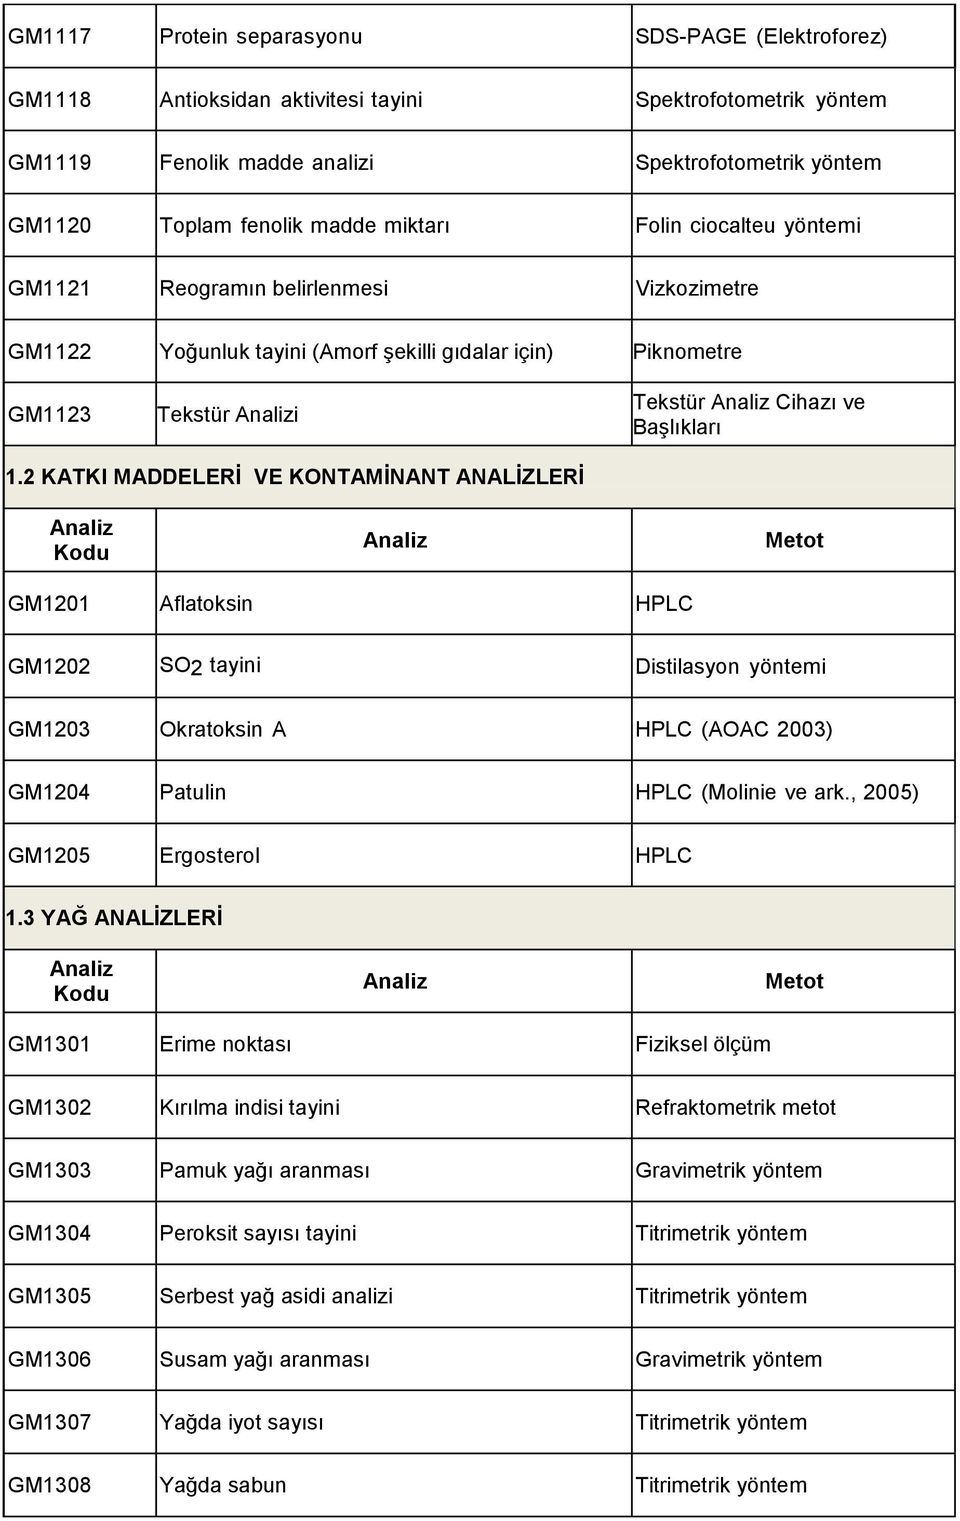 2 KATKI MADDELERİ VE KONTAMİNANT ANALİZLERİ GM1201 Aflatoksin HPLC GM1202 SO2 tayini Distilasyon yöntemi GM1203 Okratoksin A HPLC (AOAC 2003) GM1204 Patulin HPLC (Molinie ve ark.